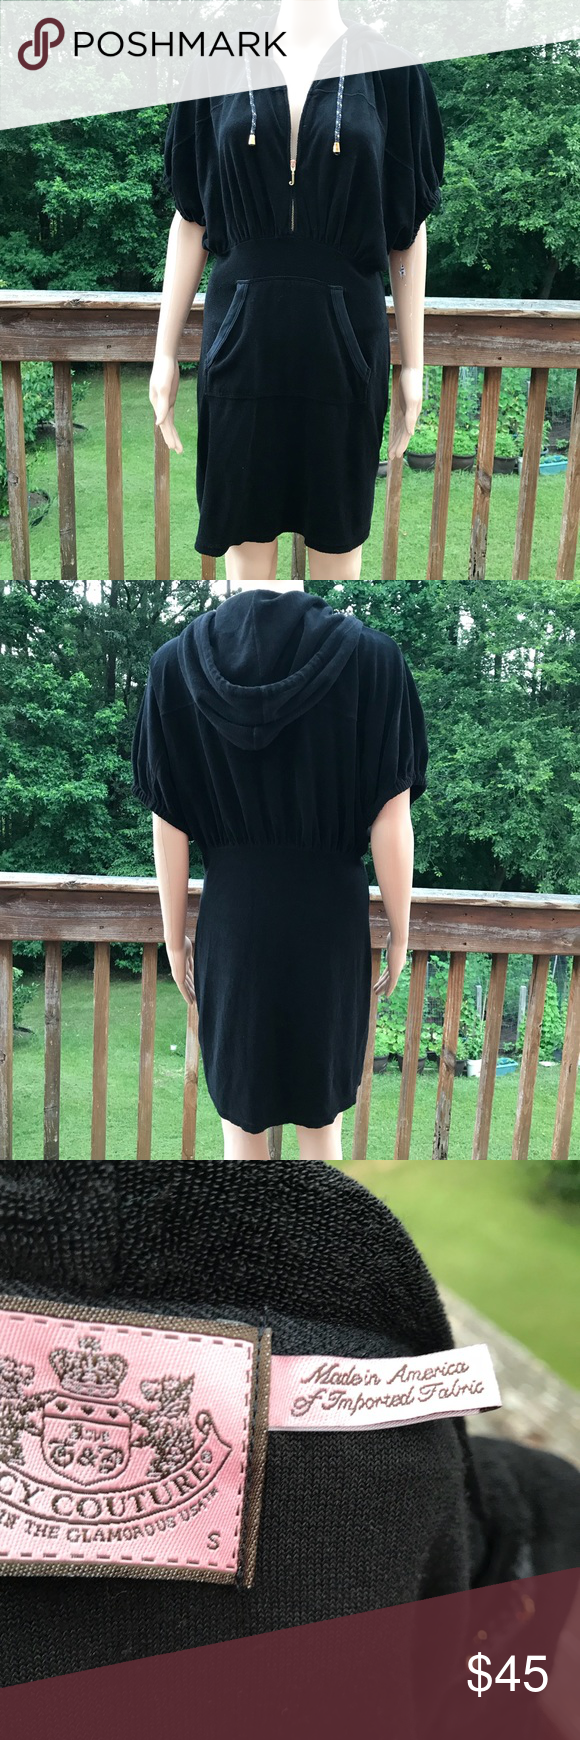 Juicy couture black towel dress cover up small in my posh